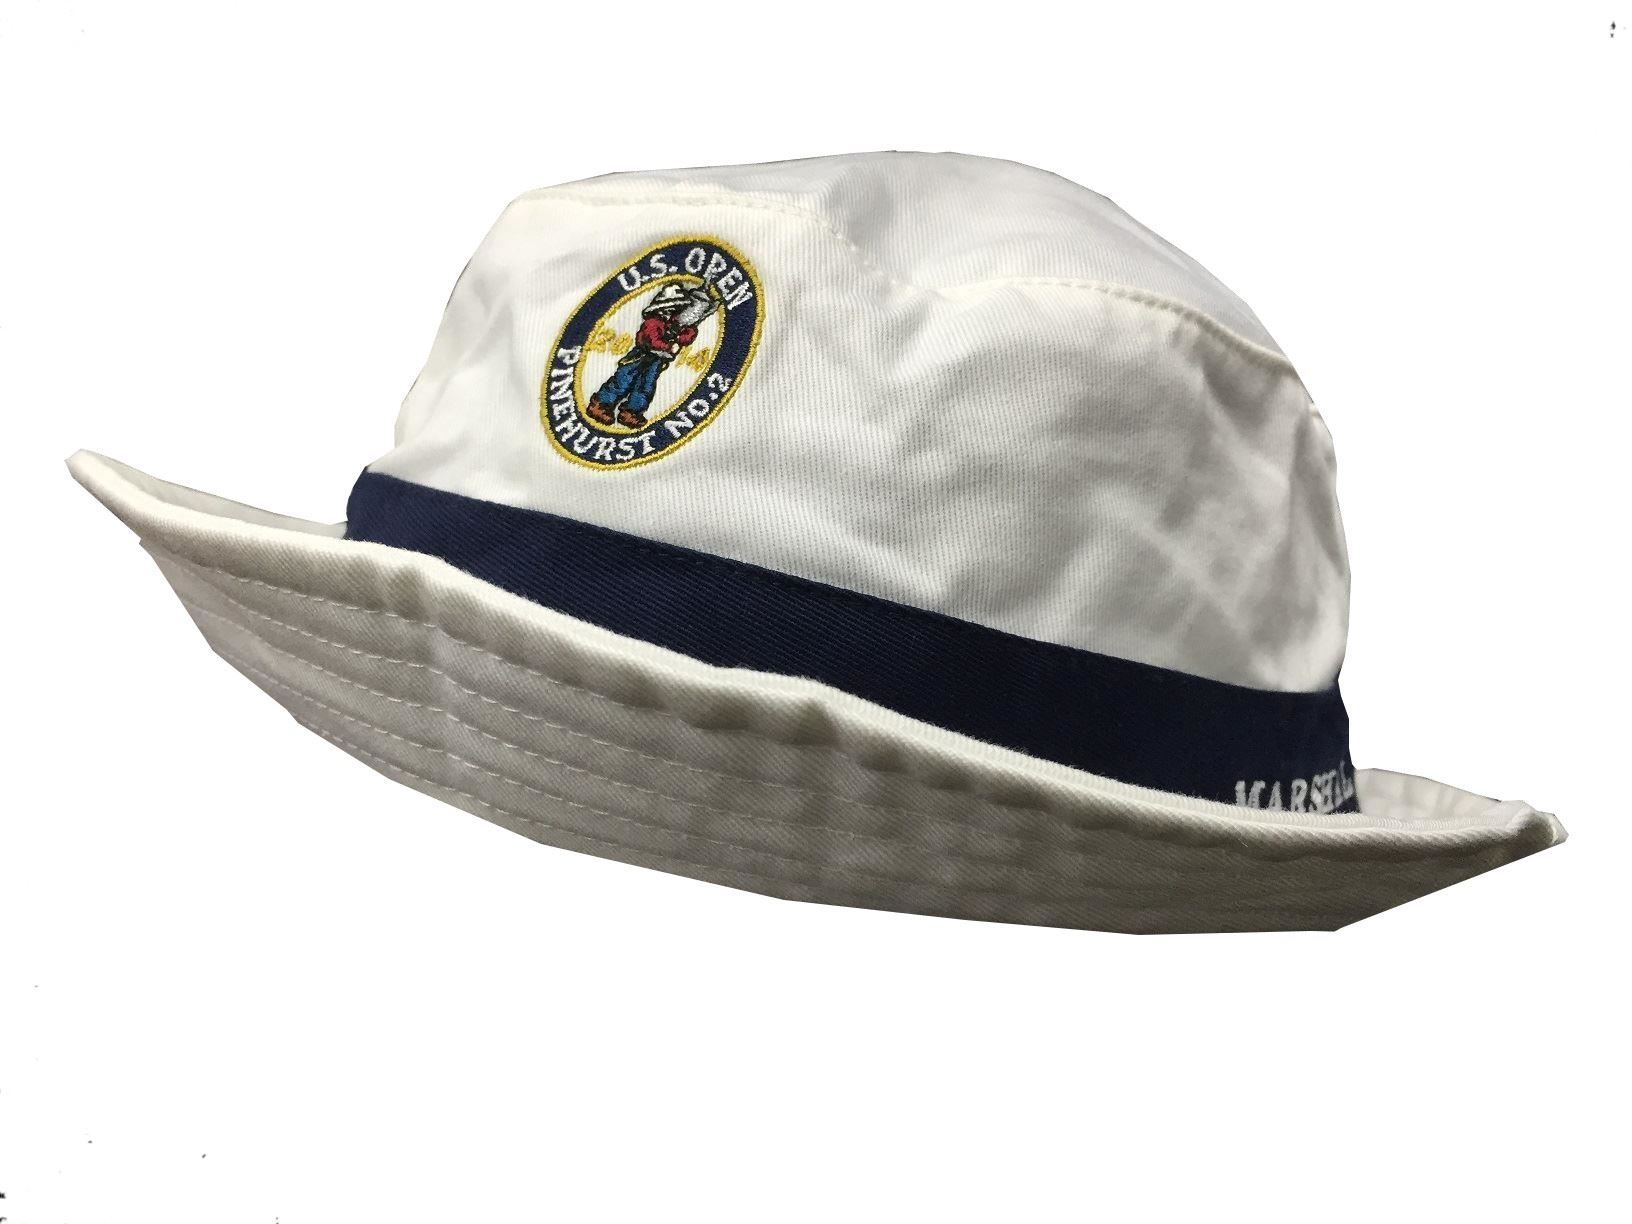 Limited Edition Polo Ralph Lauren Us Open Hats